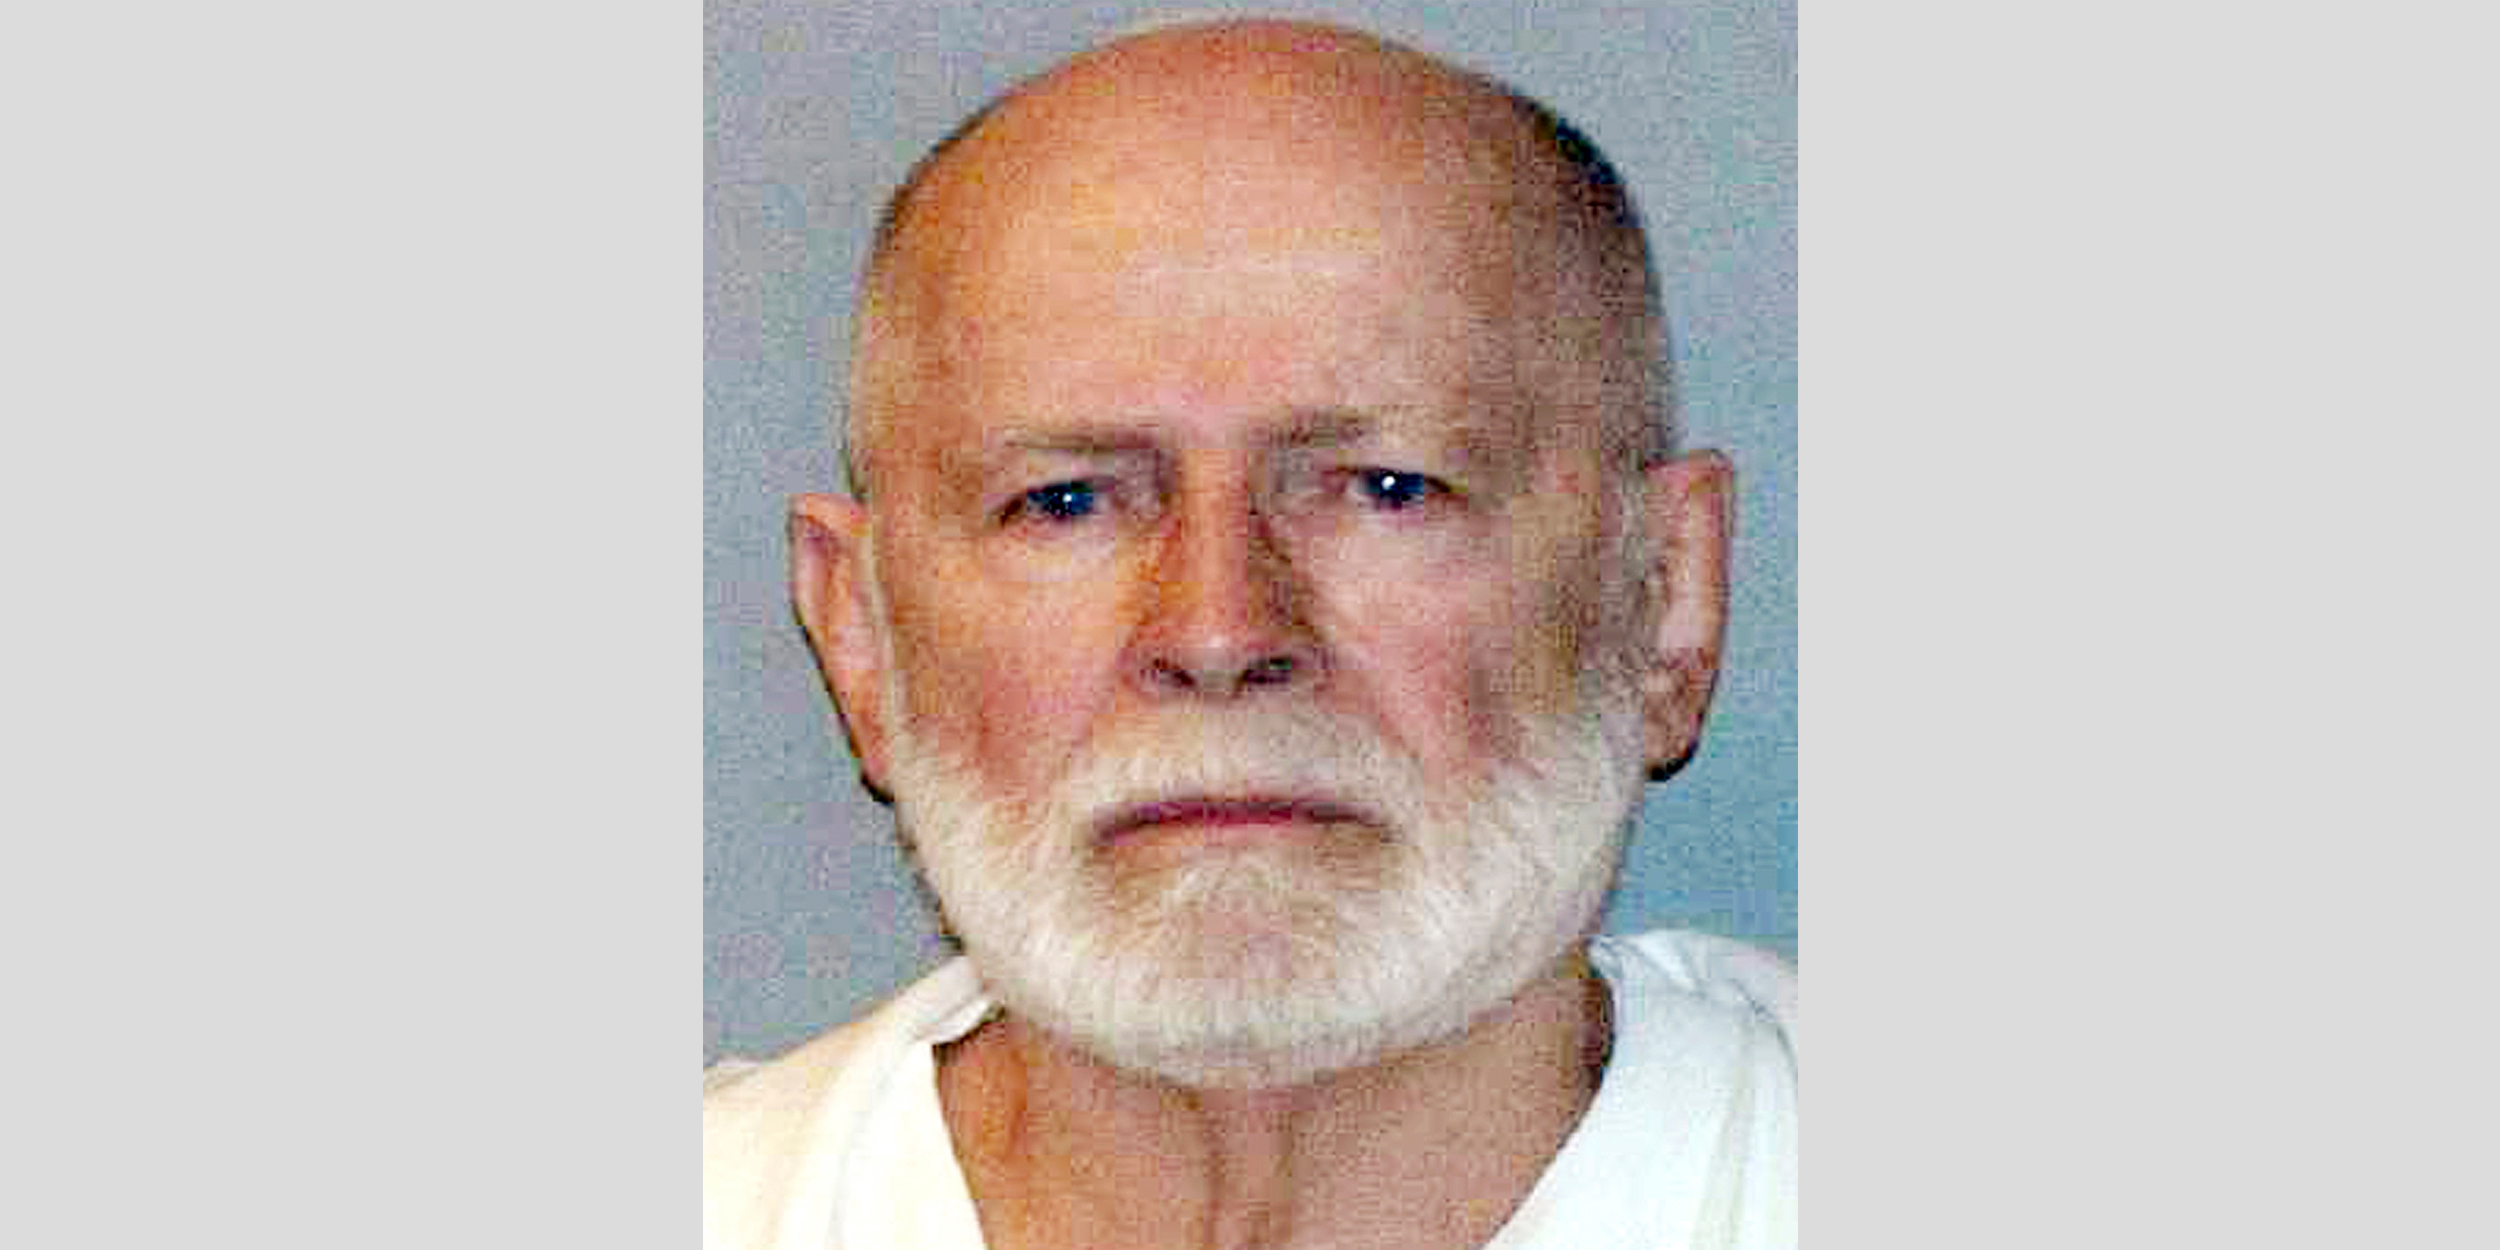 Plot thickens in Whitey Bulger murder case with transfer of 2 prisoners